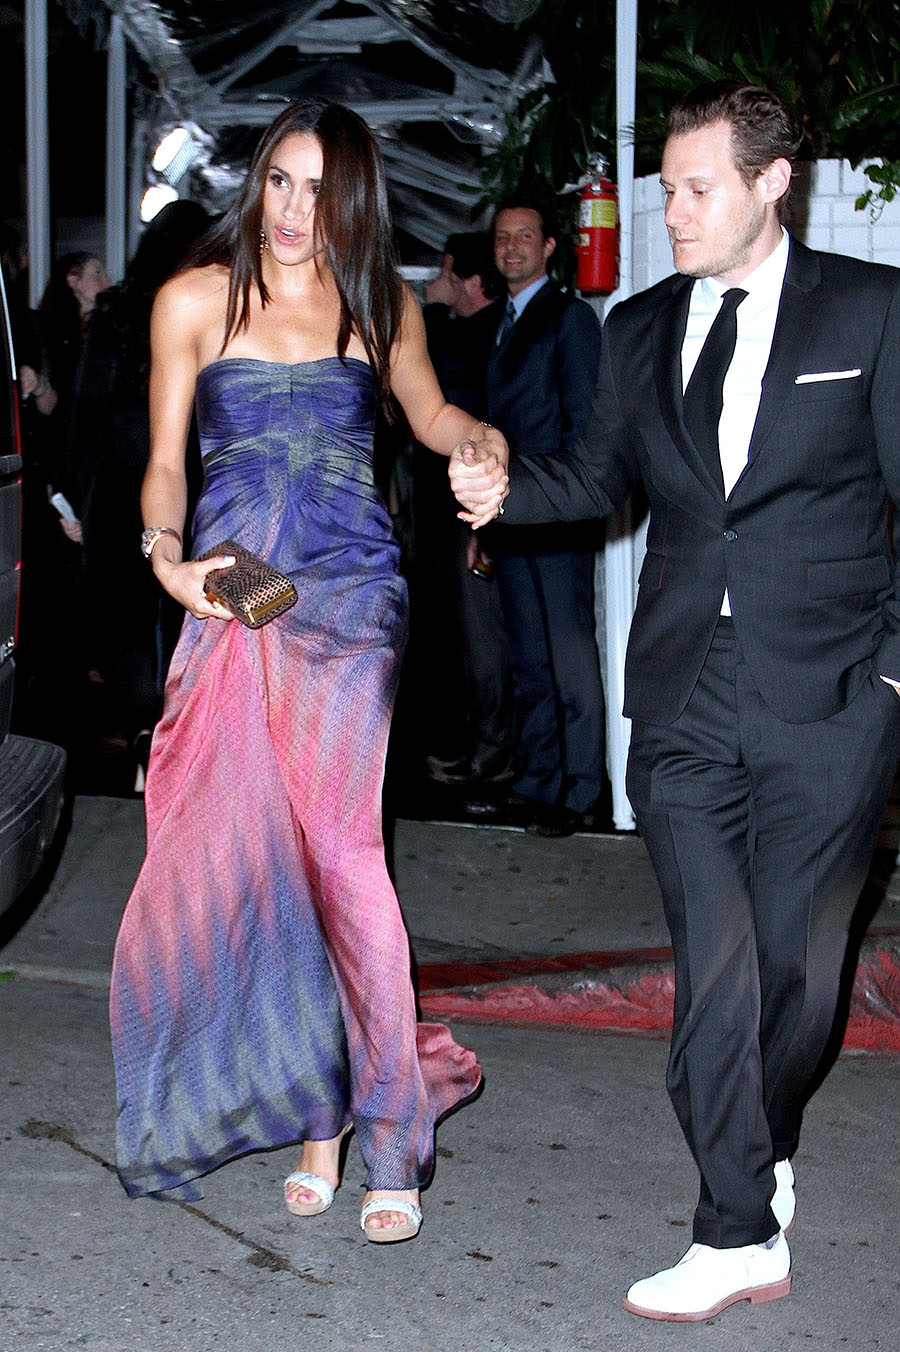 Meghan Markle and ex-husband Trevor Engelson picture at an ...